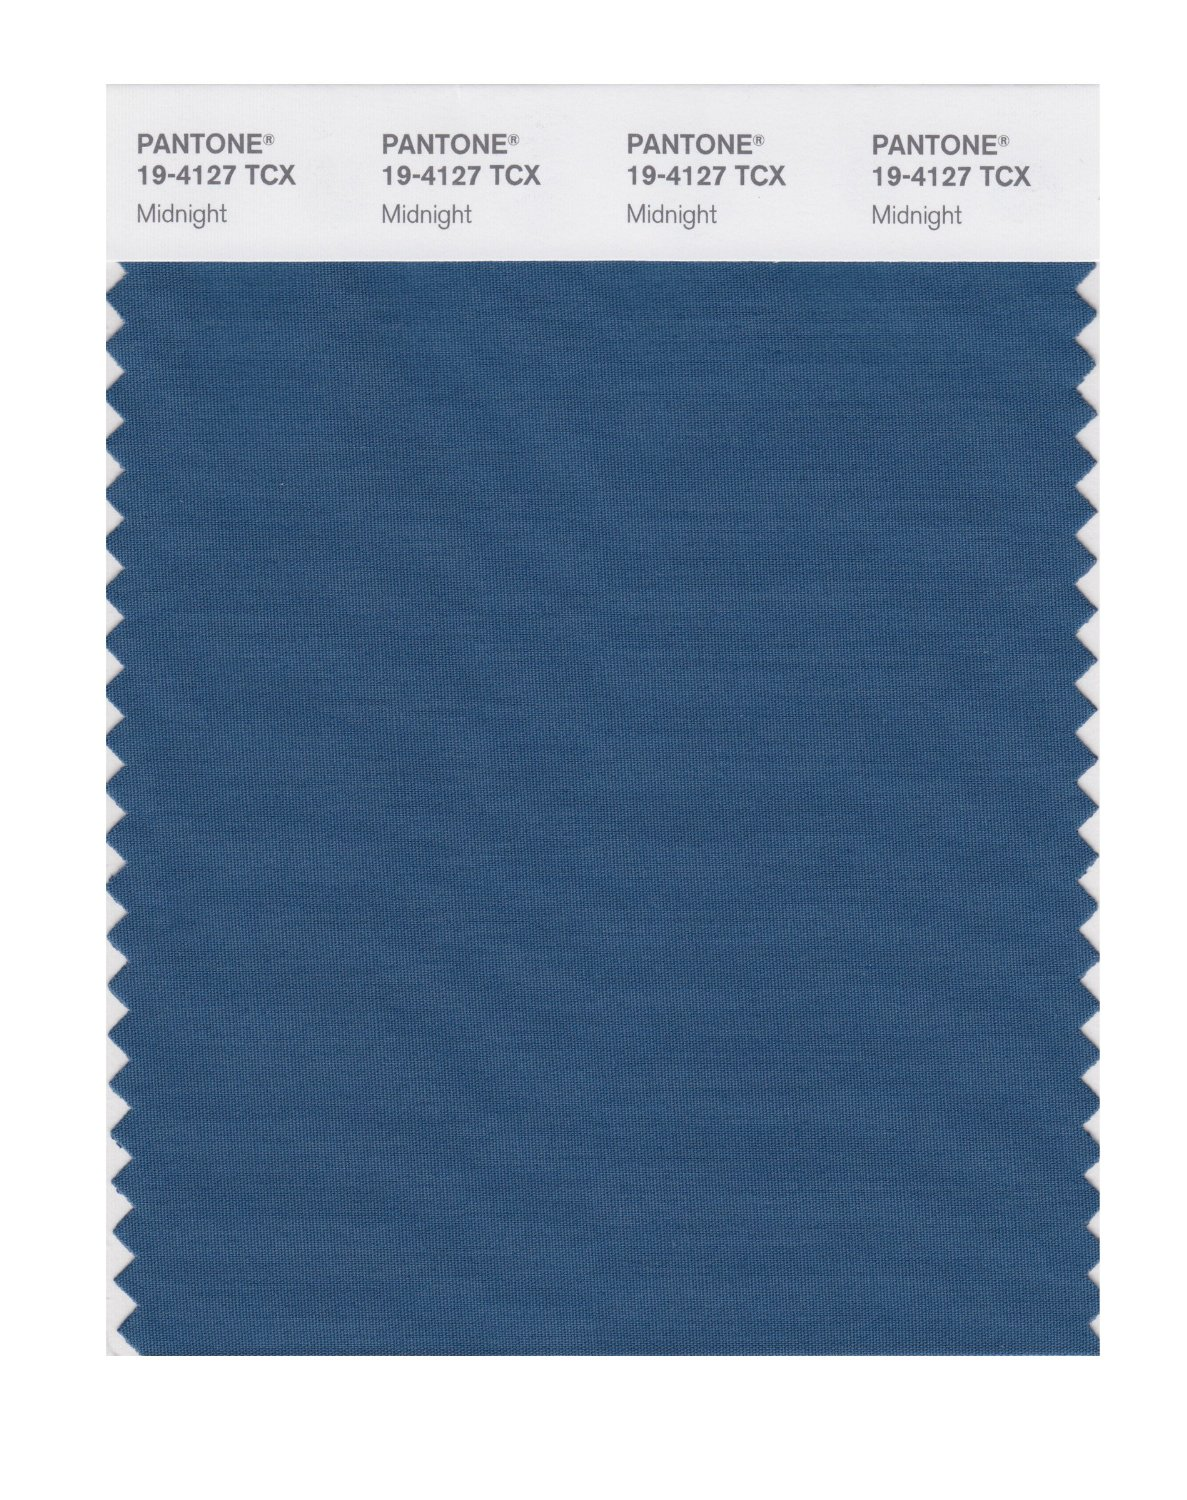 Pantone Smart Swatch 19-4127 Midnight